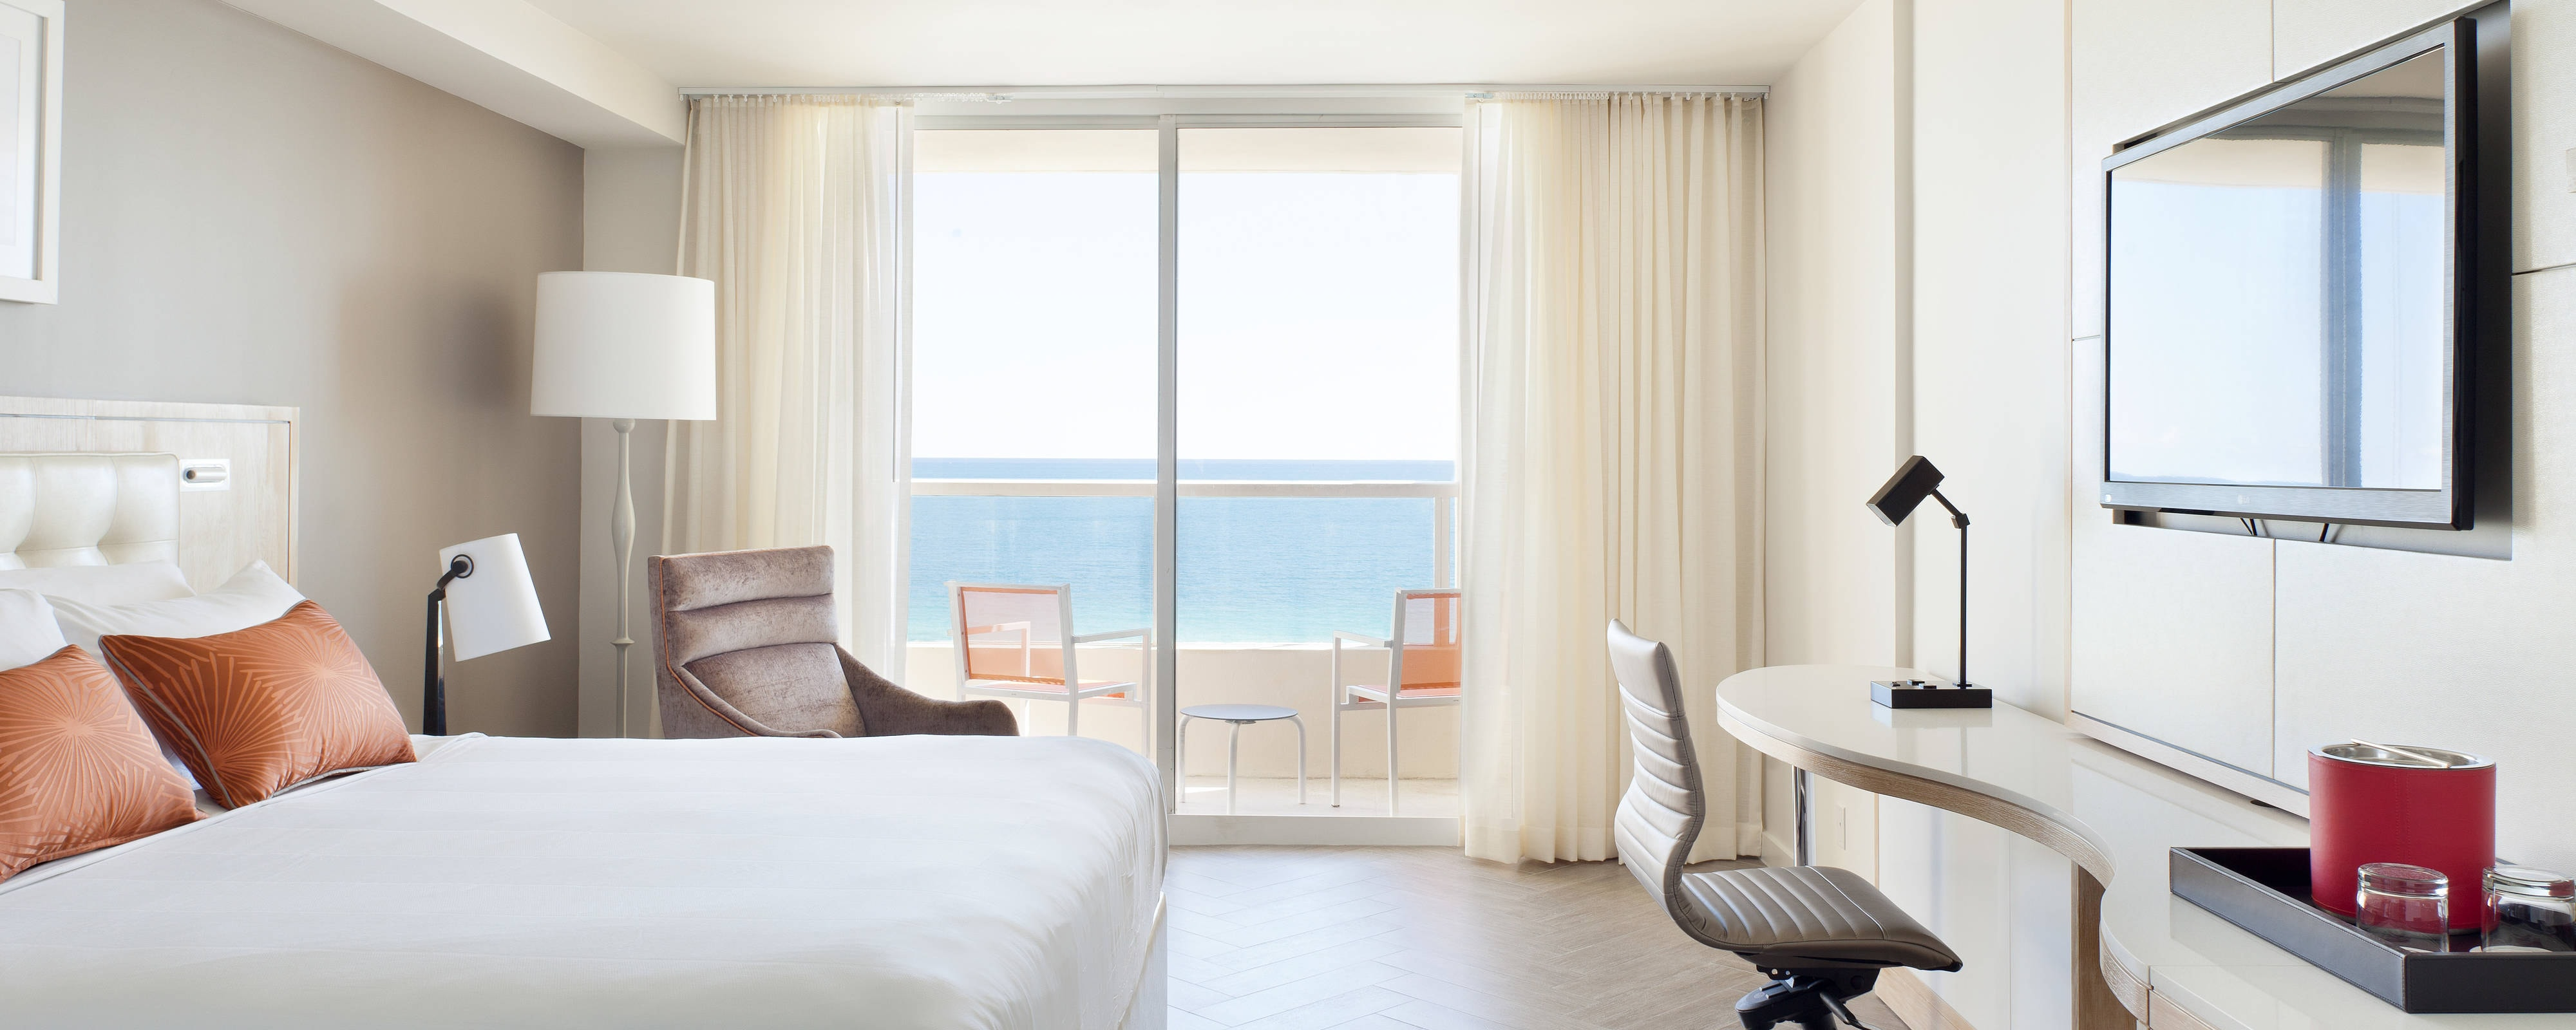 Oceanfront Hotel Rooms Miami Beach